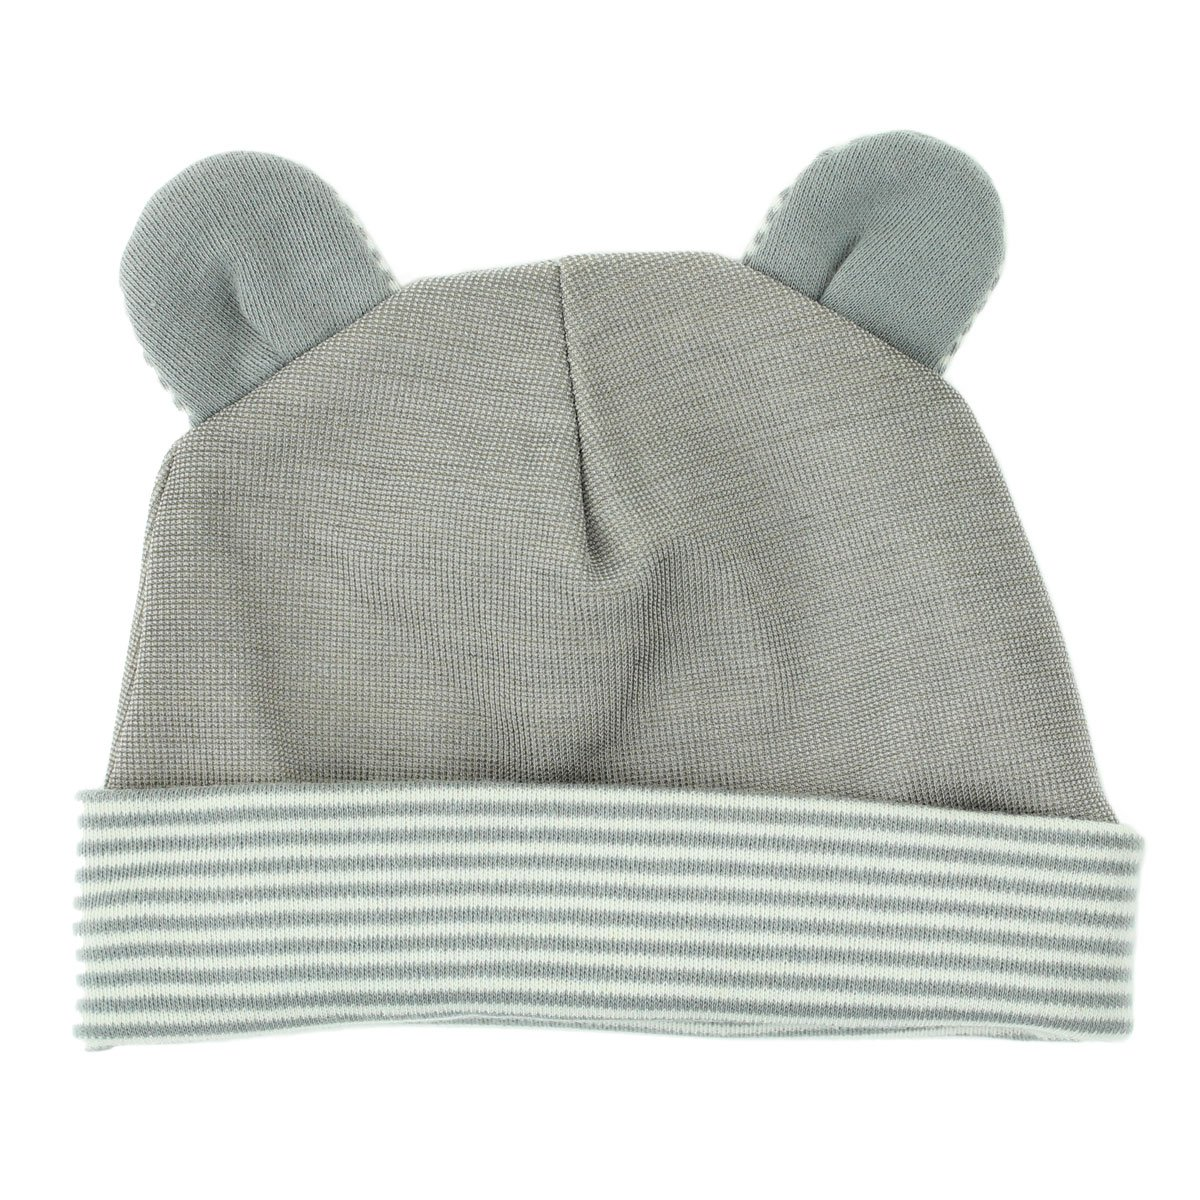 Belly Armor Anti-Radiation Baby Hat | Organic Cotton | Available in Two Styles: Rabbit or Mouse RadiaShield Technologies BH.MO.1.07.15.00082